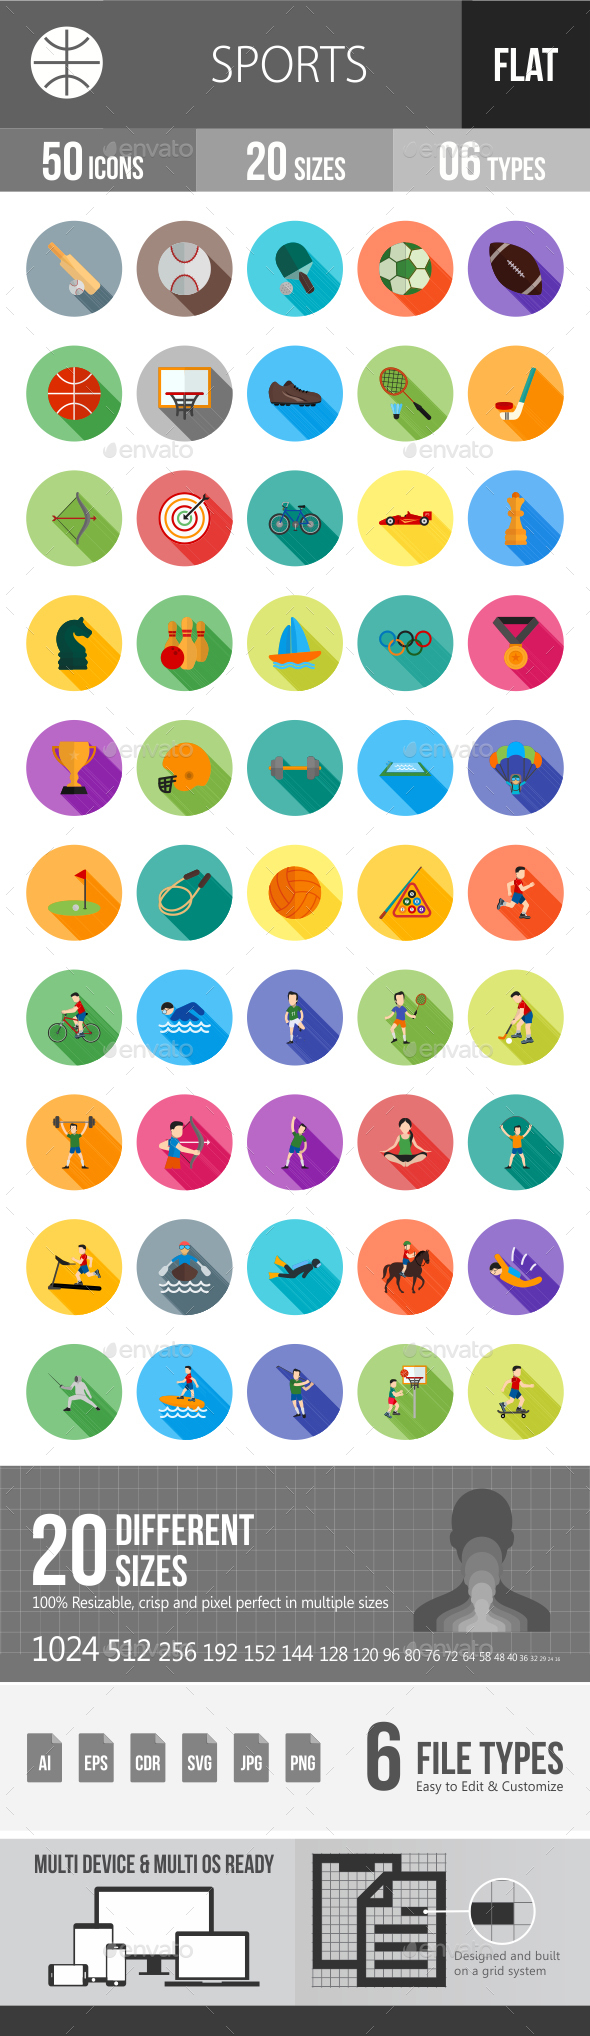 Sports Flat Shadowed Icons - Icons